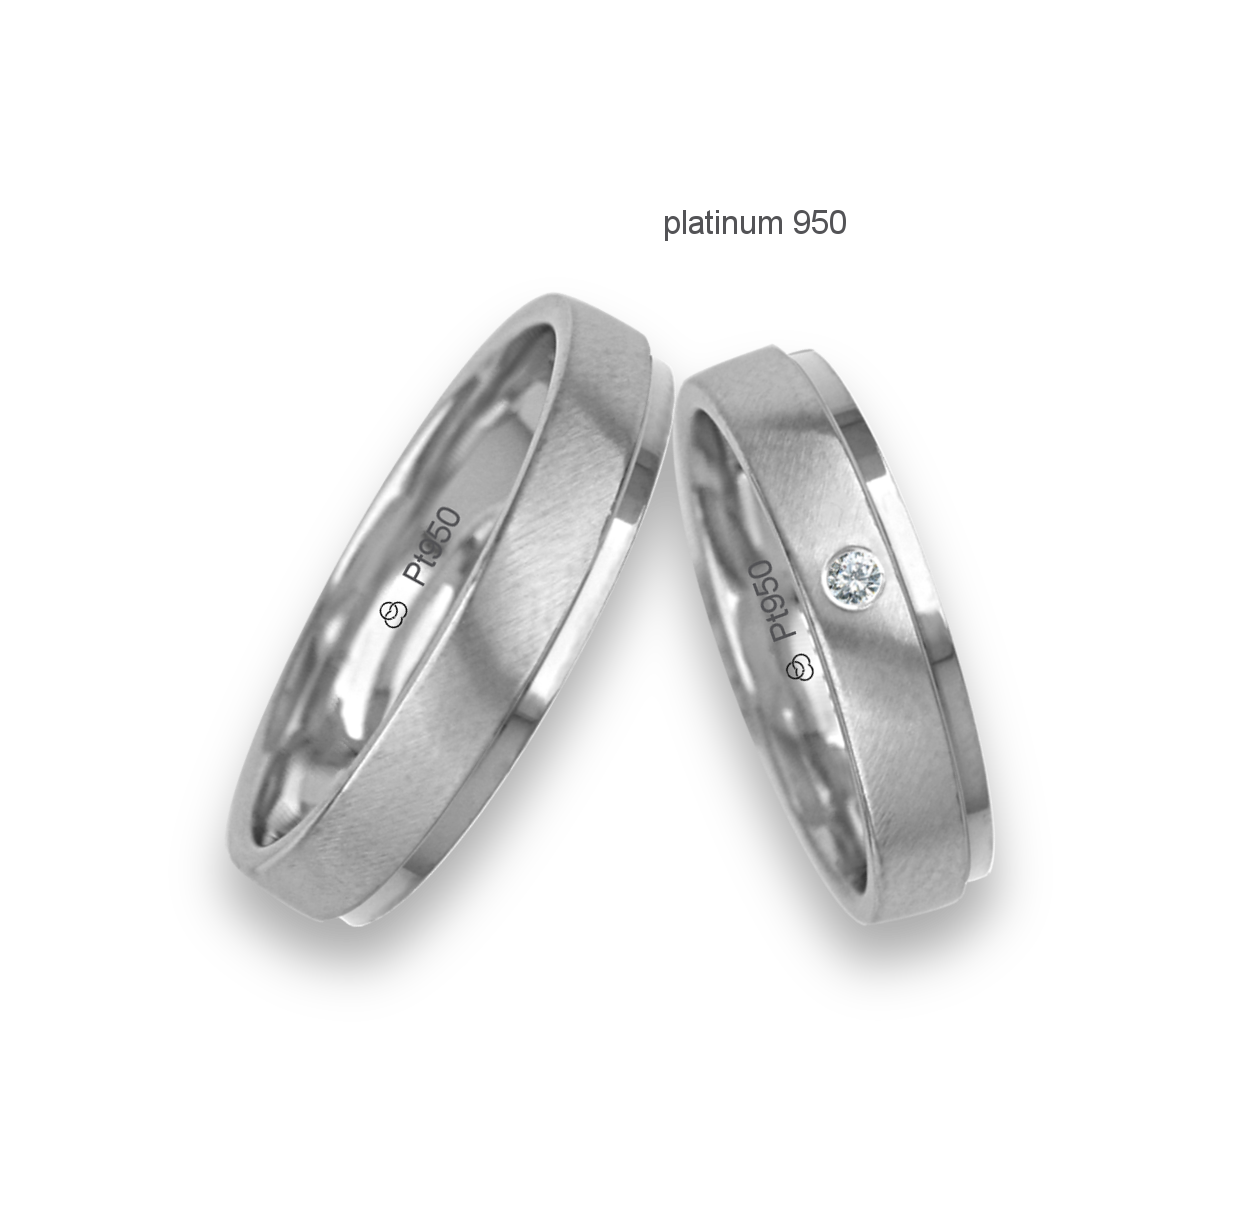 PLATINUM WEDDING BANDS